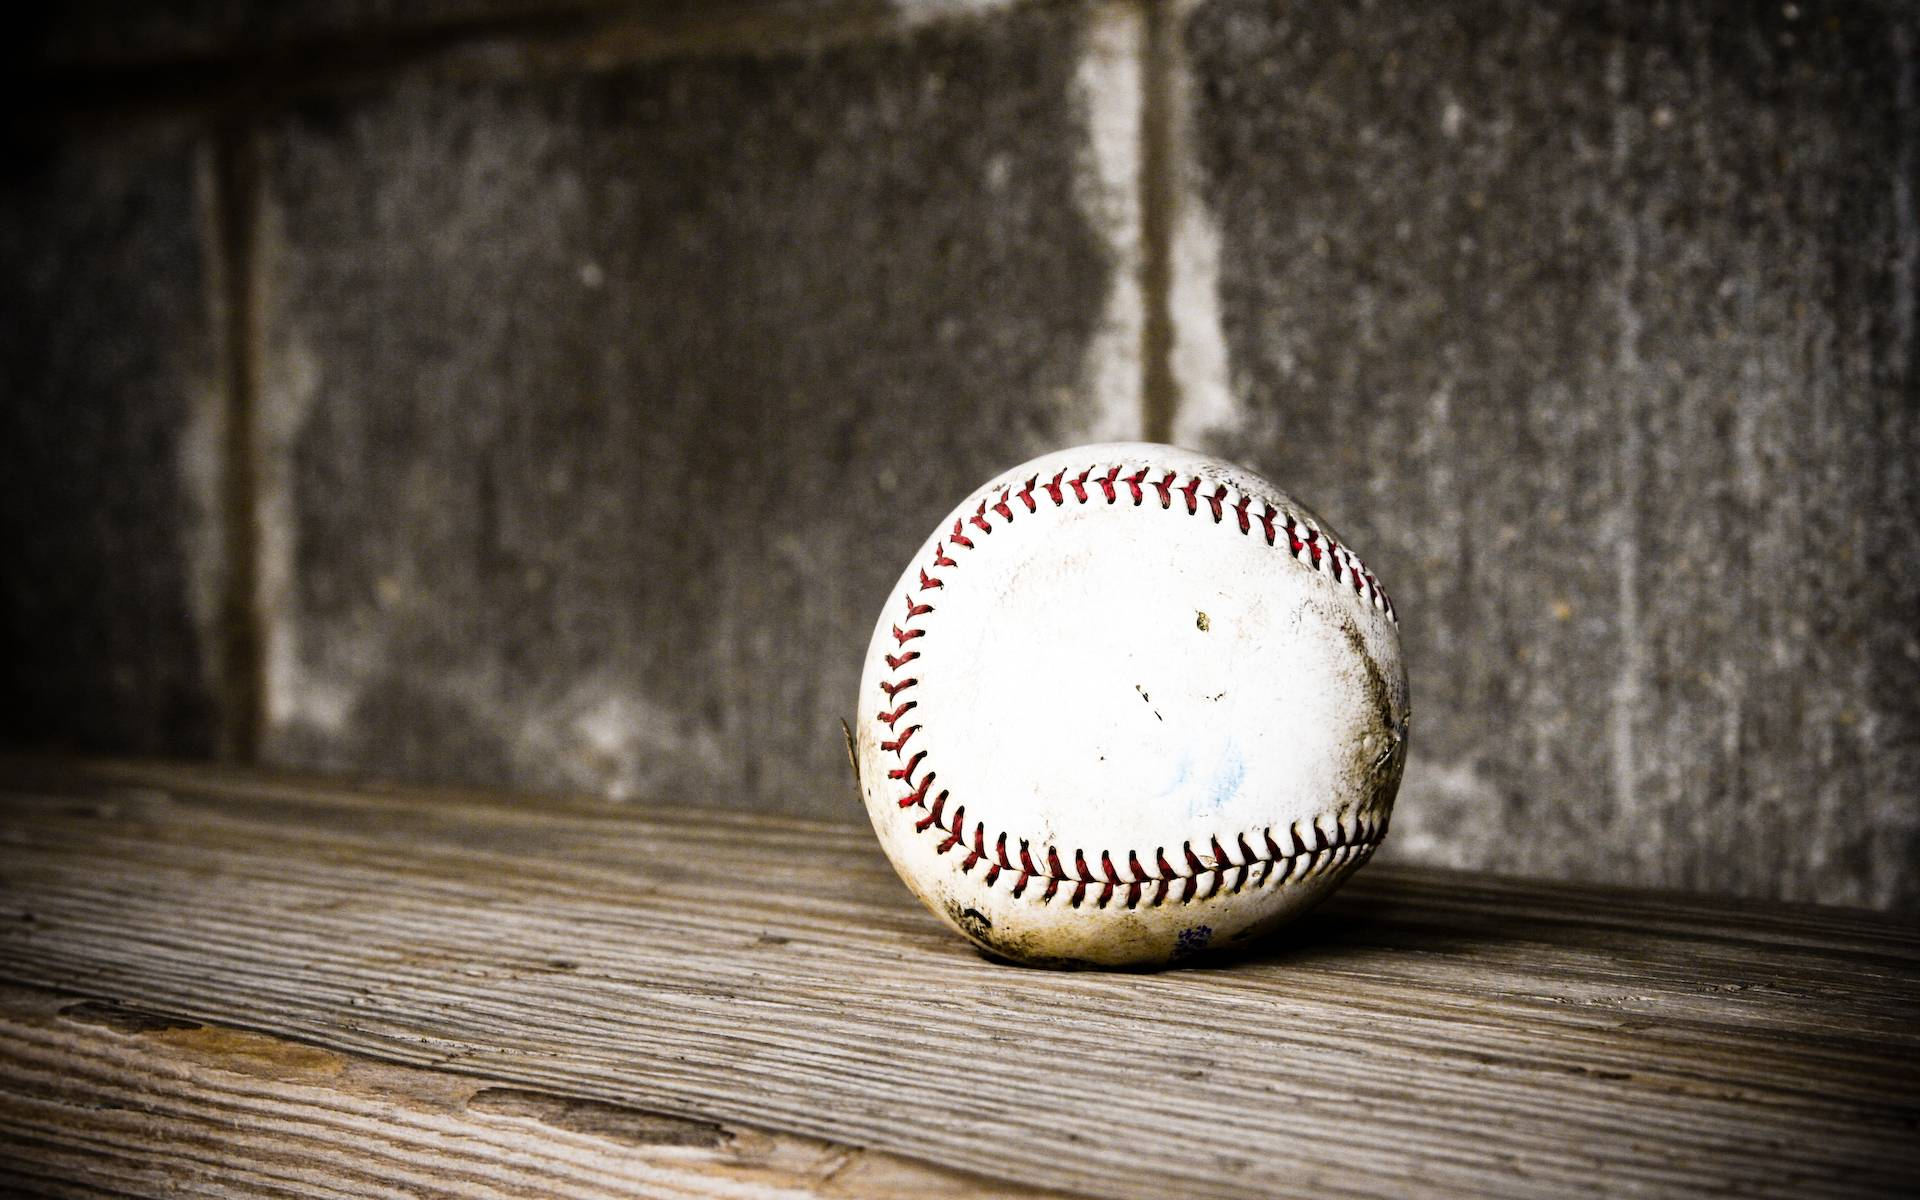 baseball new wallpaper images pictures download hd wallpapers